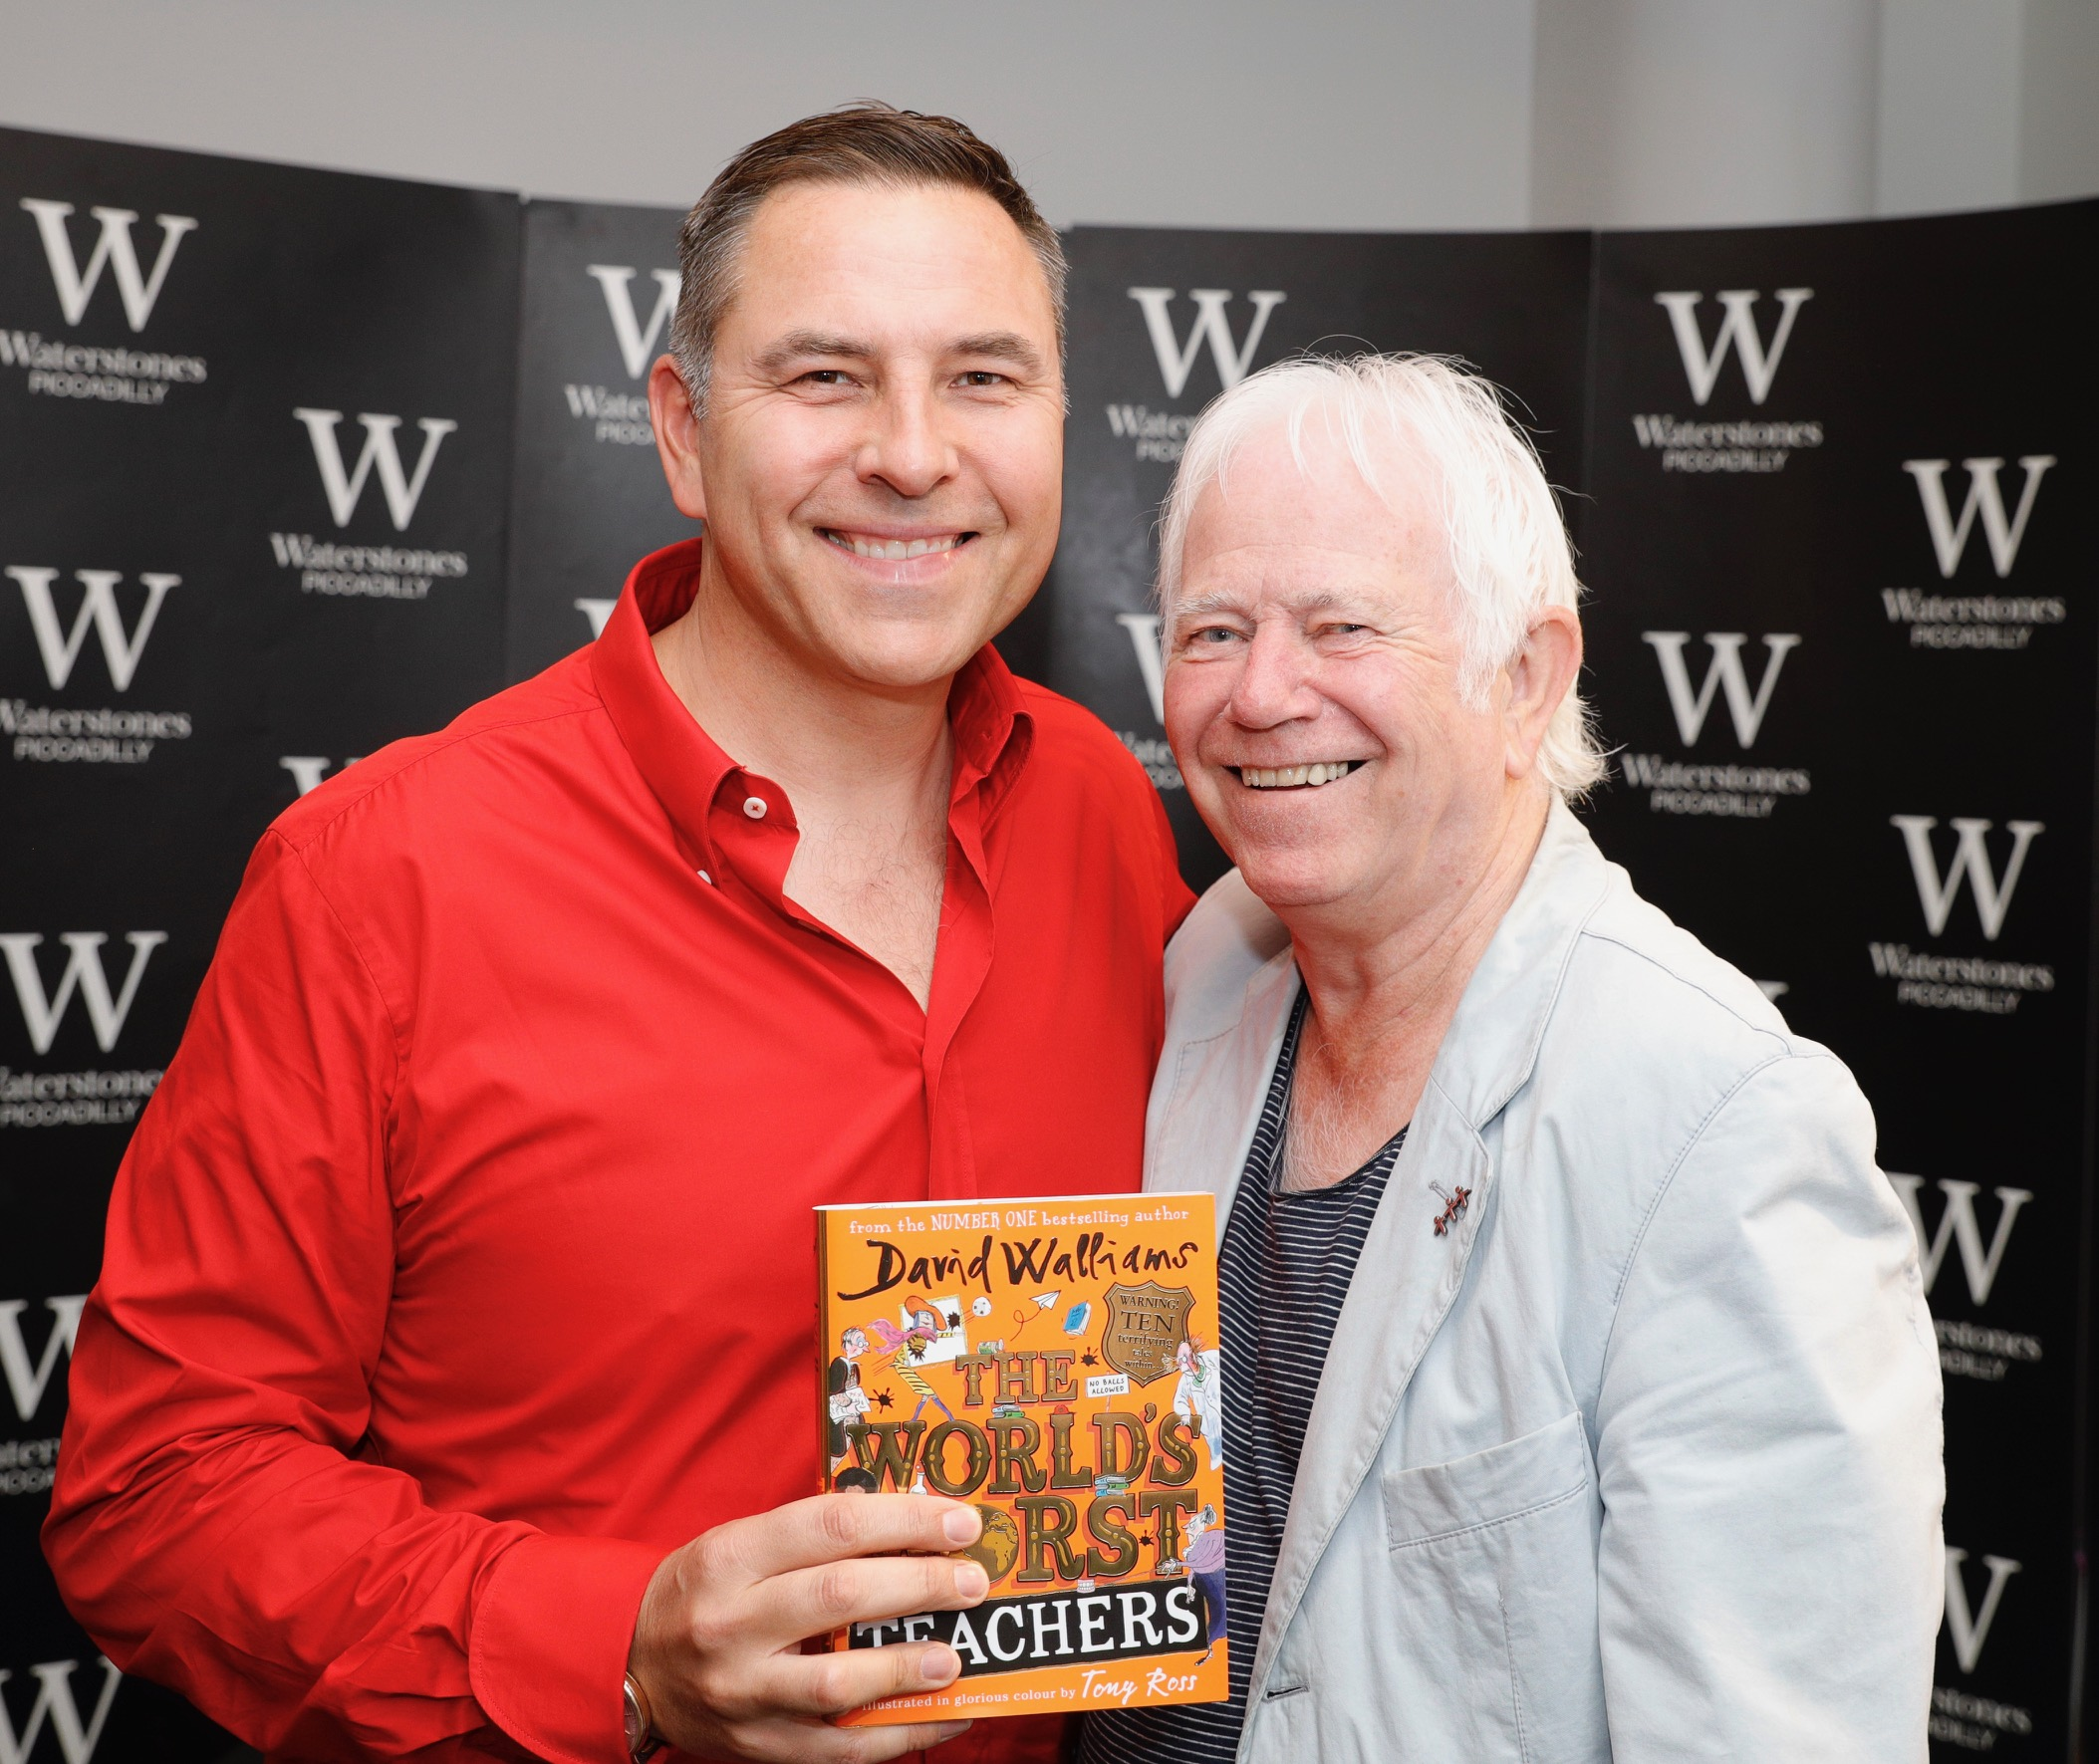 David Walliams and Tony Ross at Waterstones Piccadilly!